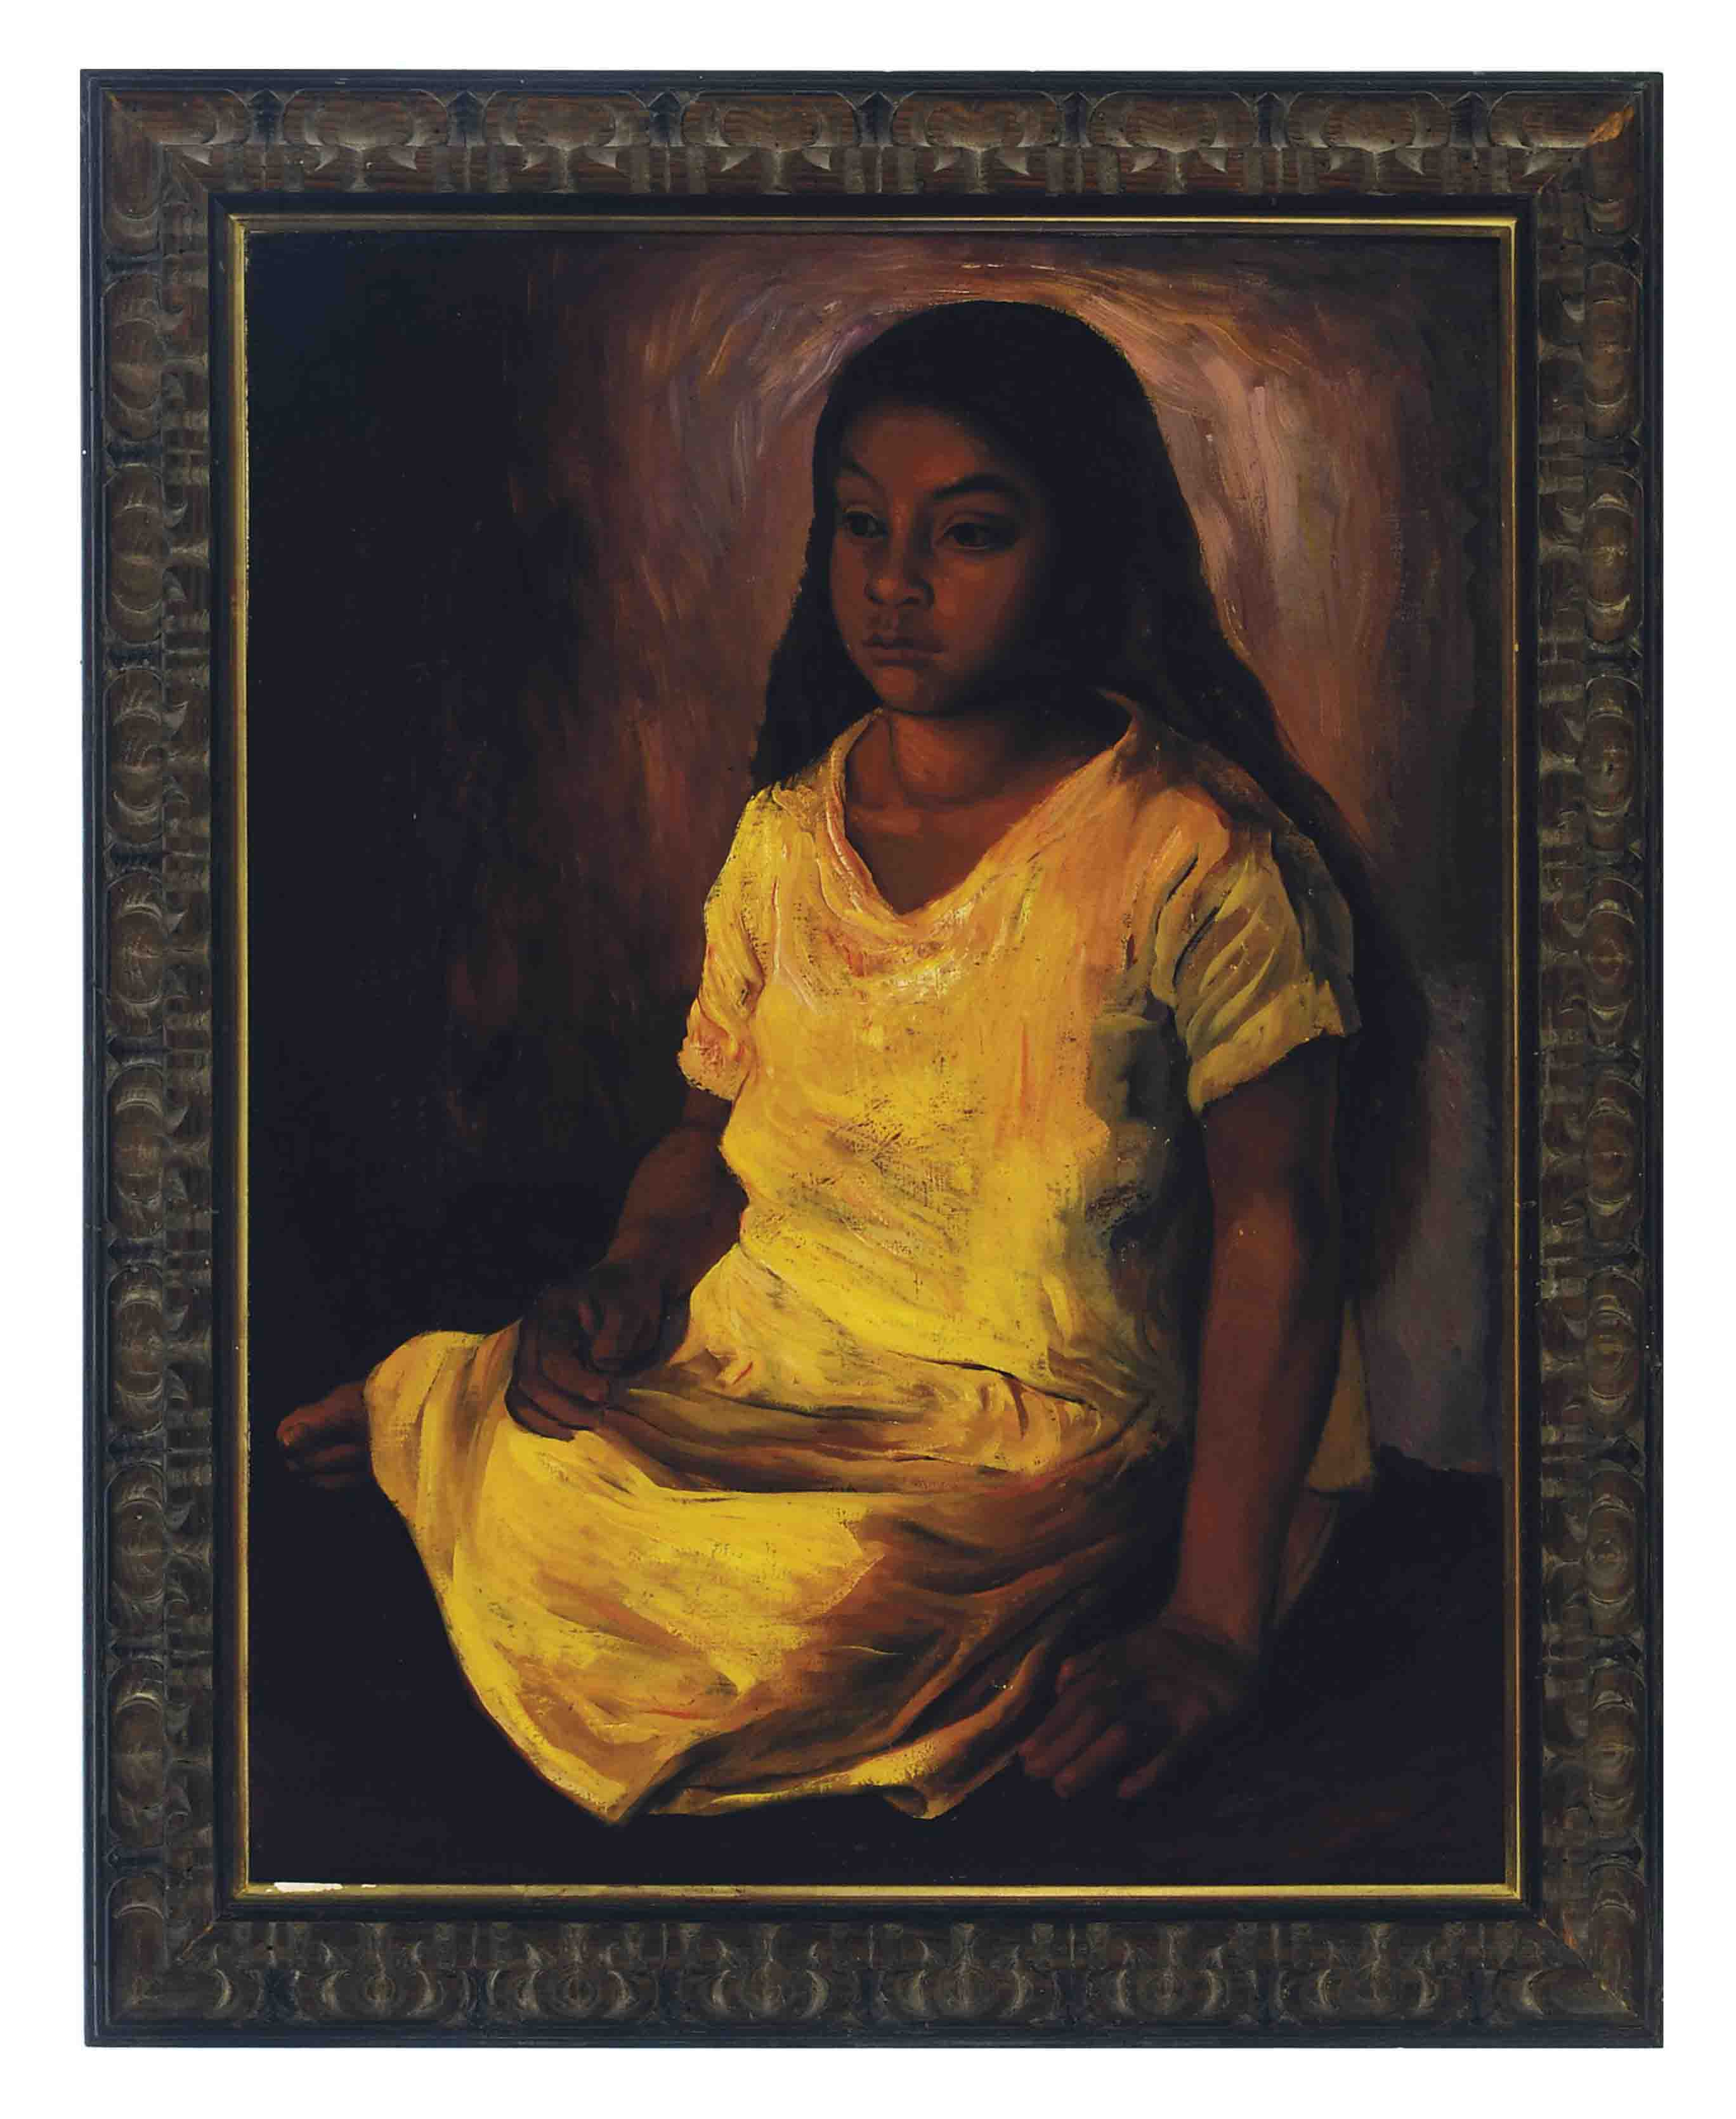 Portrait of a young girl wearing a yellow dress